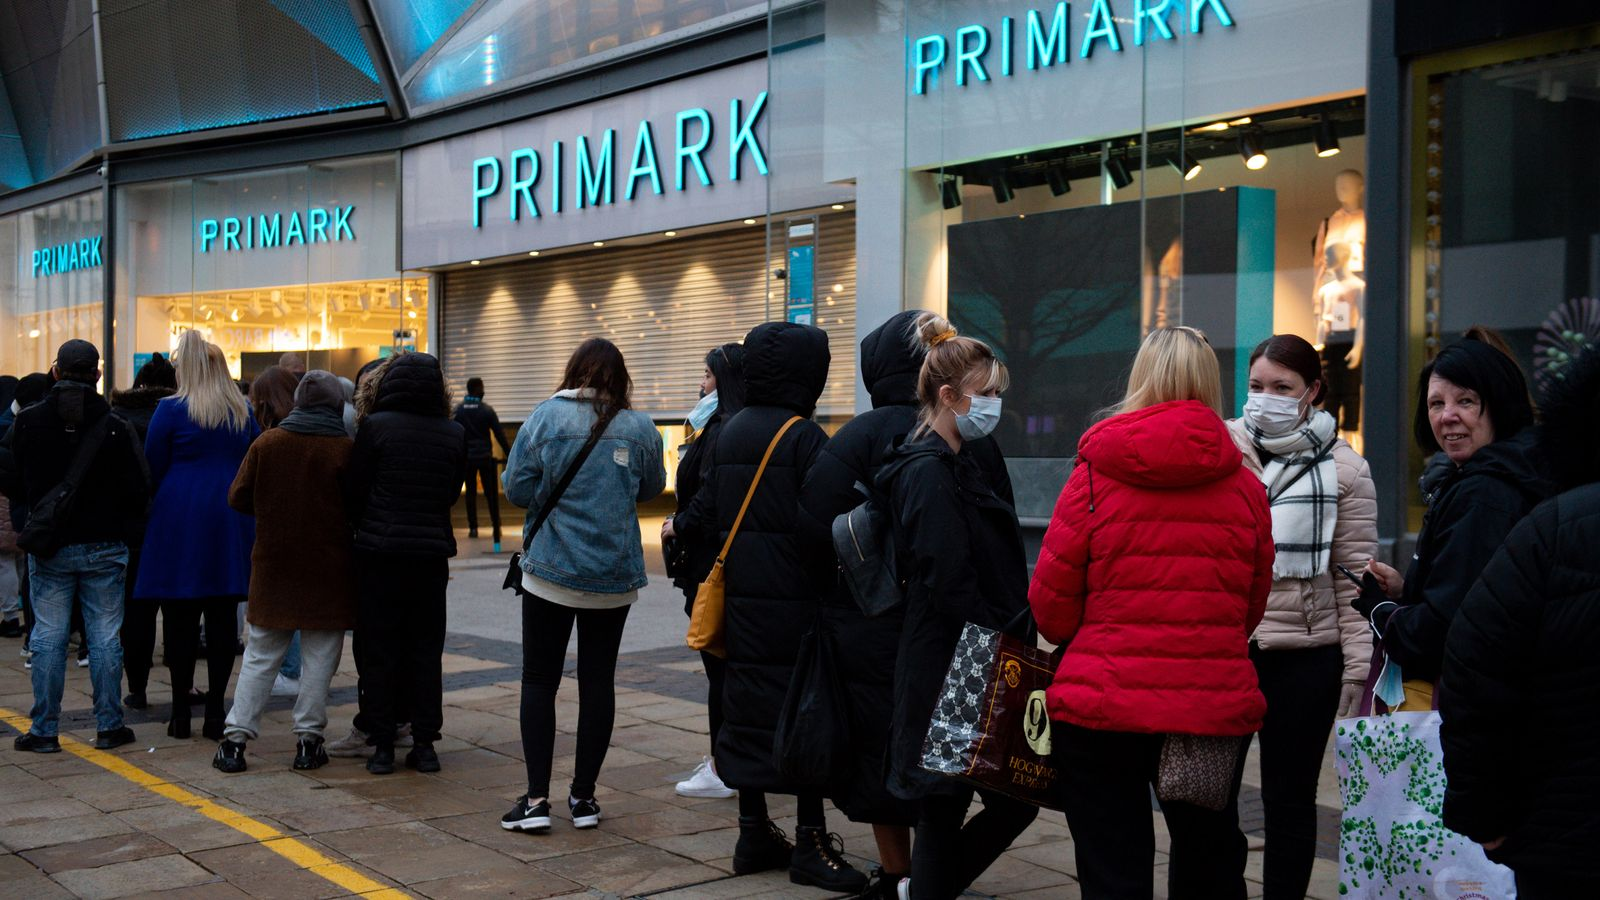 COVID-19: Primark to return £121m in furlough cash as reopening sparks 'record sales'